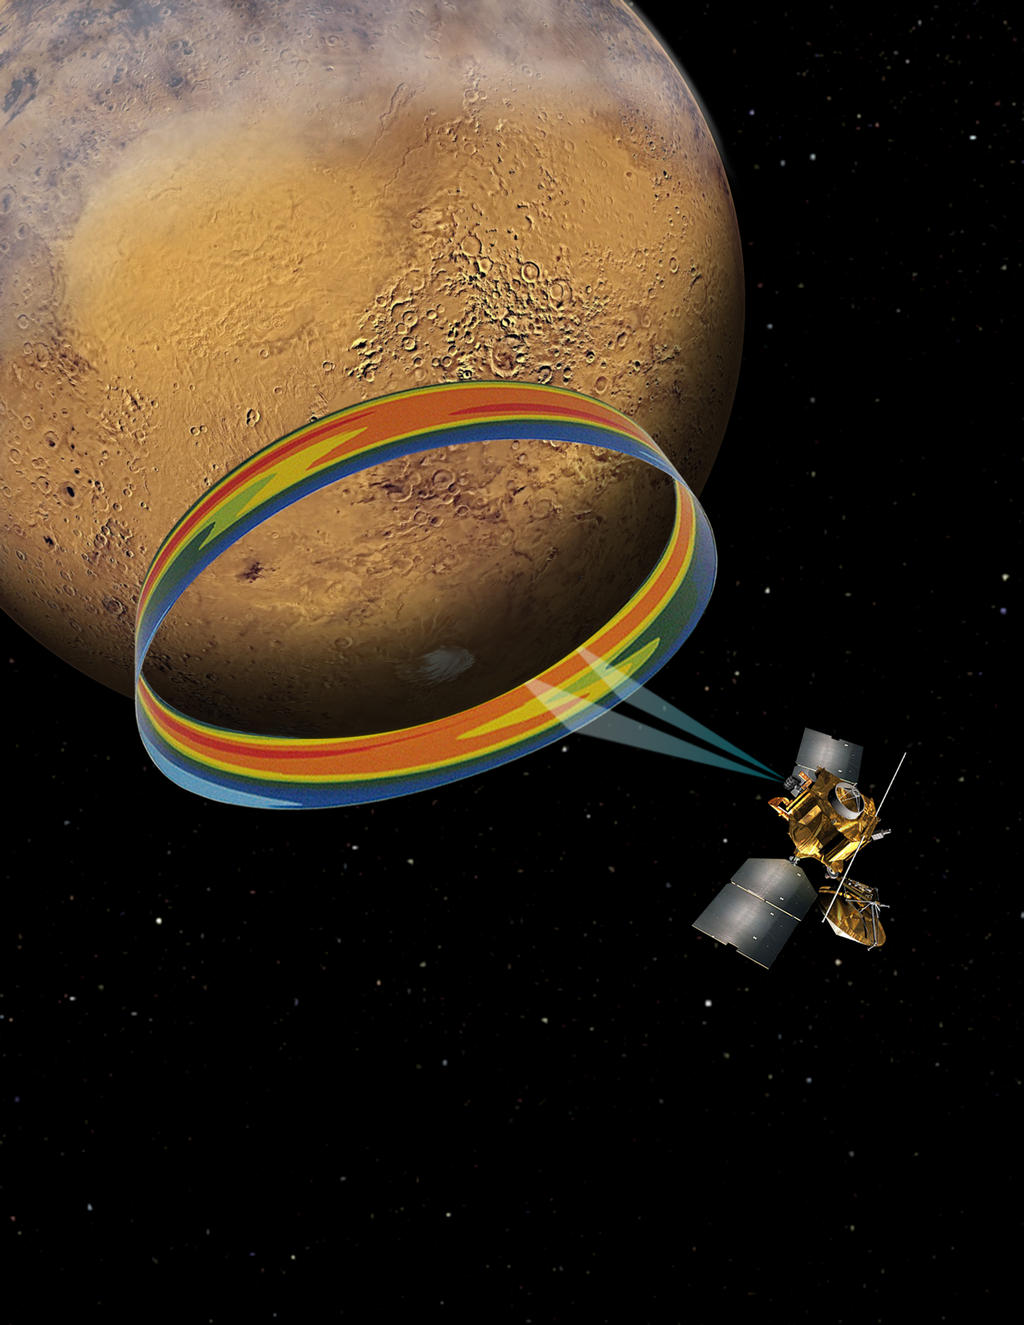 This graphic depicts the Mars Climate Sounder instrument on NASA's Mars Reconnaissance Orbiter measuring the temperature of a cross section of the Martian atmosphere as the orbiter passes above the south polar region.